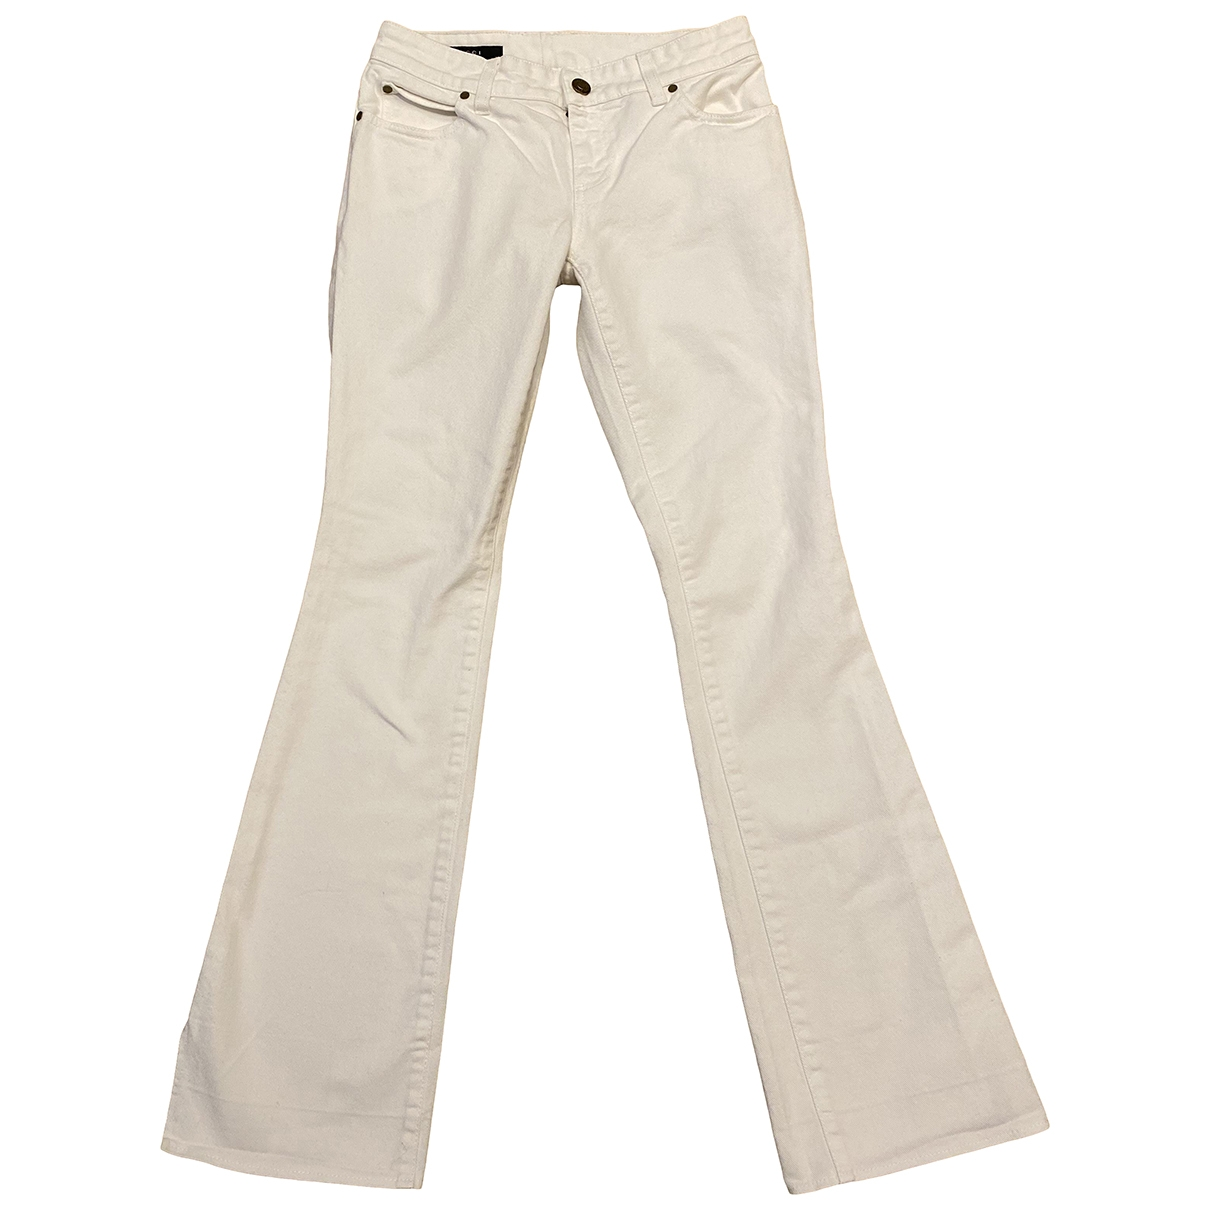 Gucci \N White Denim - Jeans Trousers for Women 38 IT